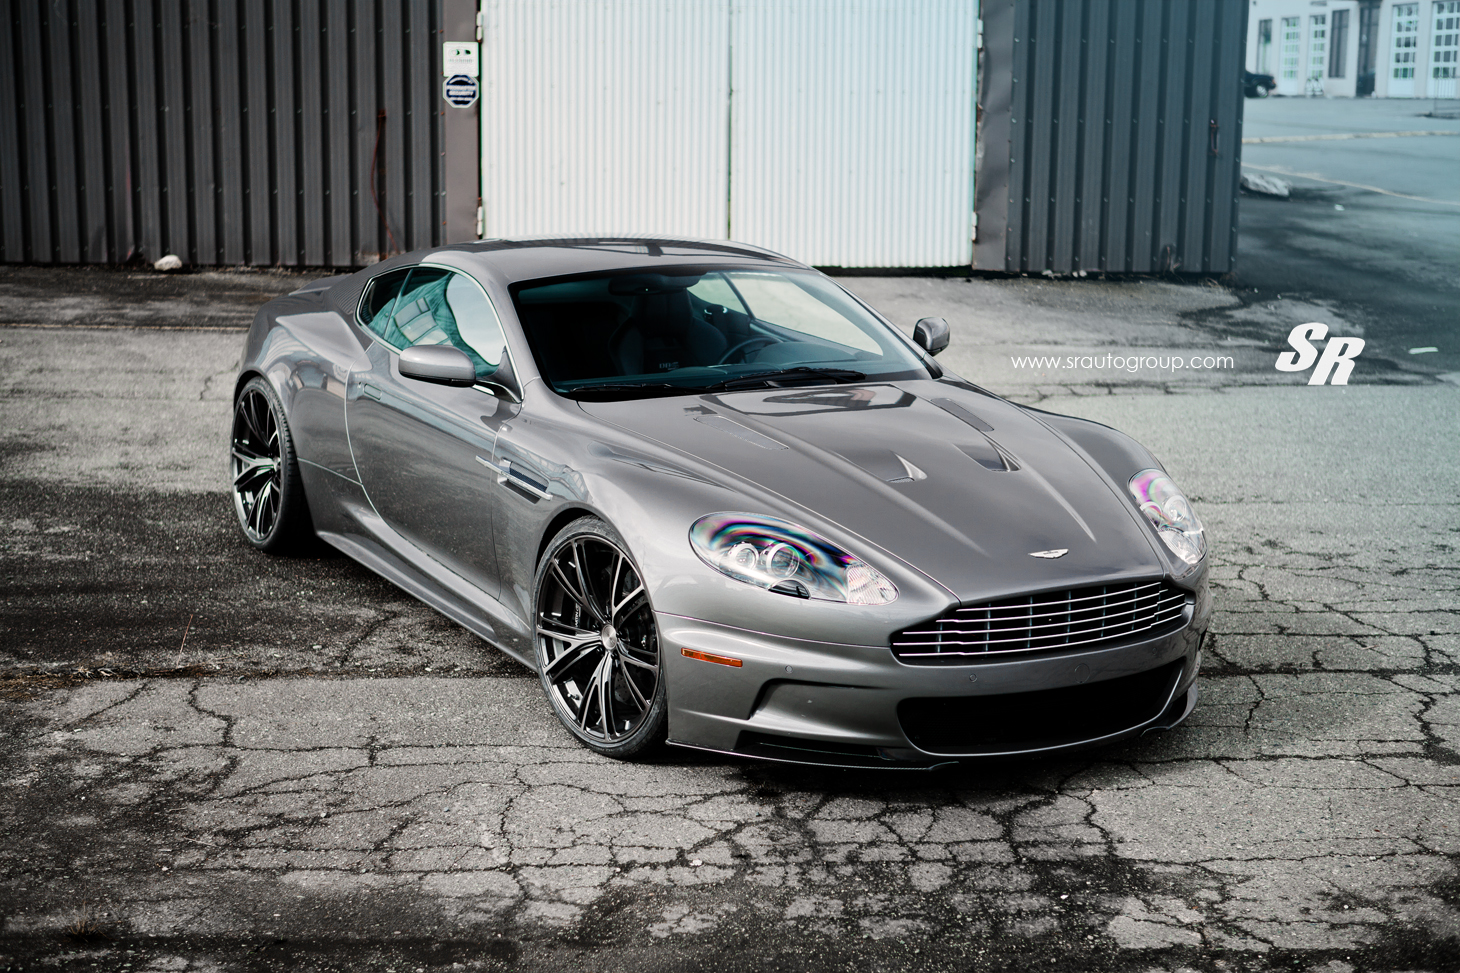 2008 aston martin db9 with Aston Martin Dbs on Prdview big 258418 moreover The Cars Of Kanye West additionally Fisker Surf besides Isuzu D Max additionally 60289.